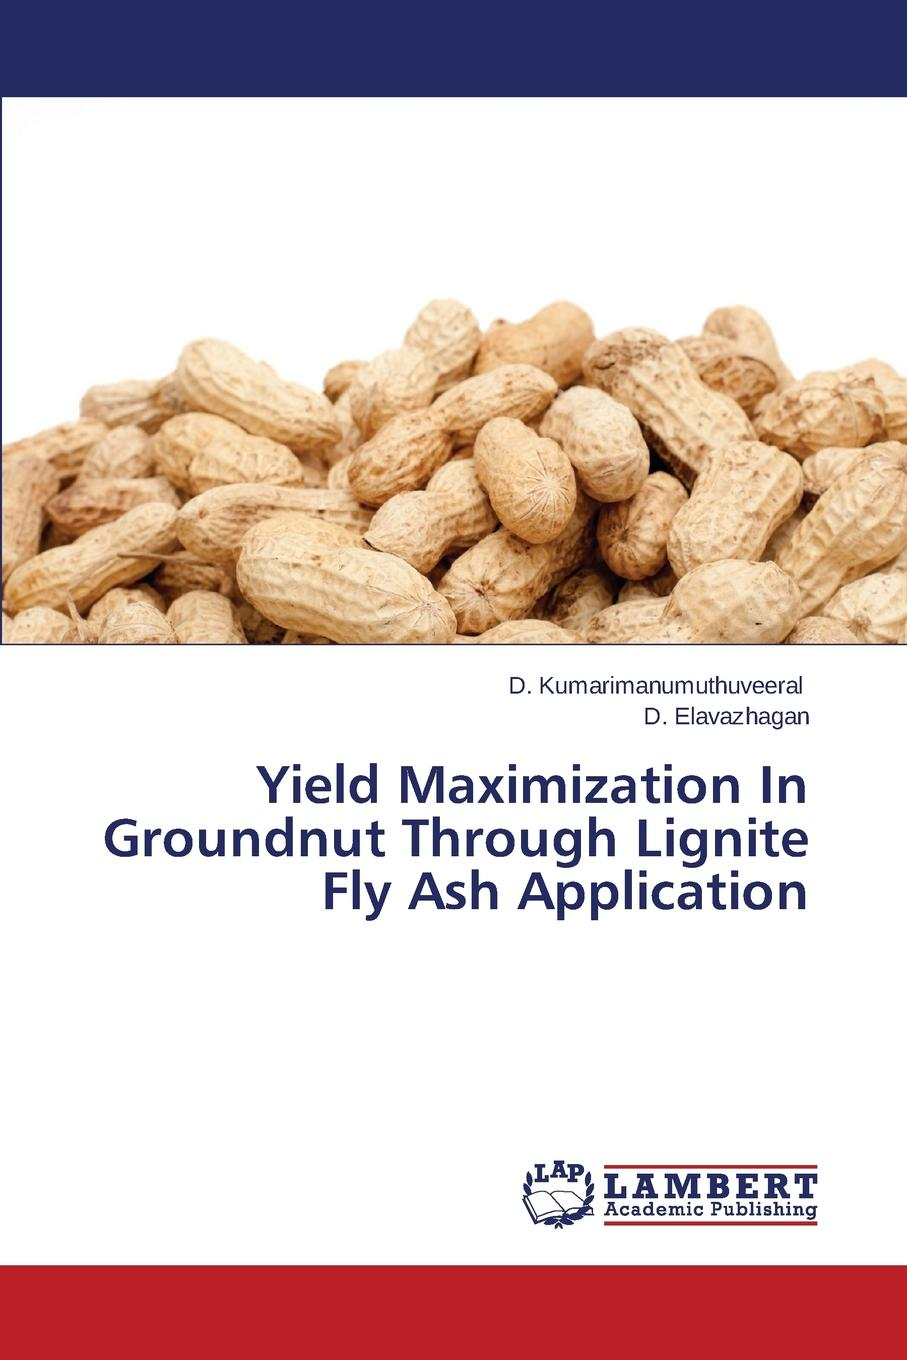 Kumarimanumuthuveeral D., Elavazhagan D. Yield Maximization in Groundnut Through Lignite Fly Ash Application evaluation of disease resistance in groundnut